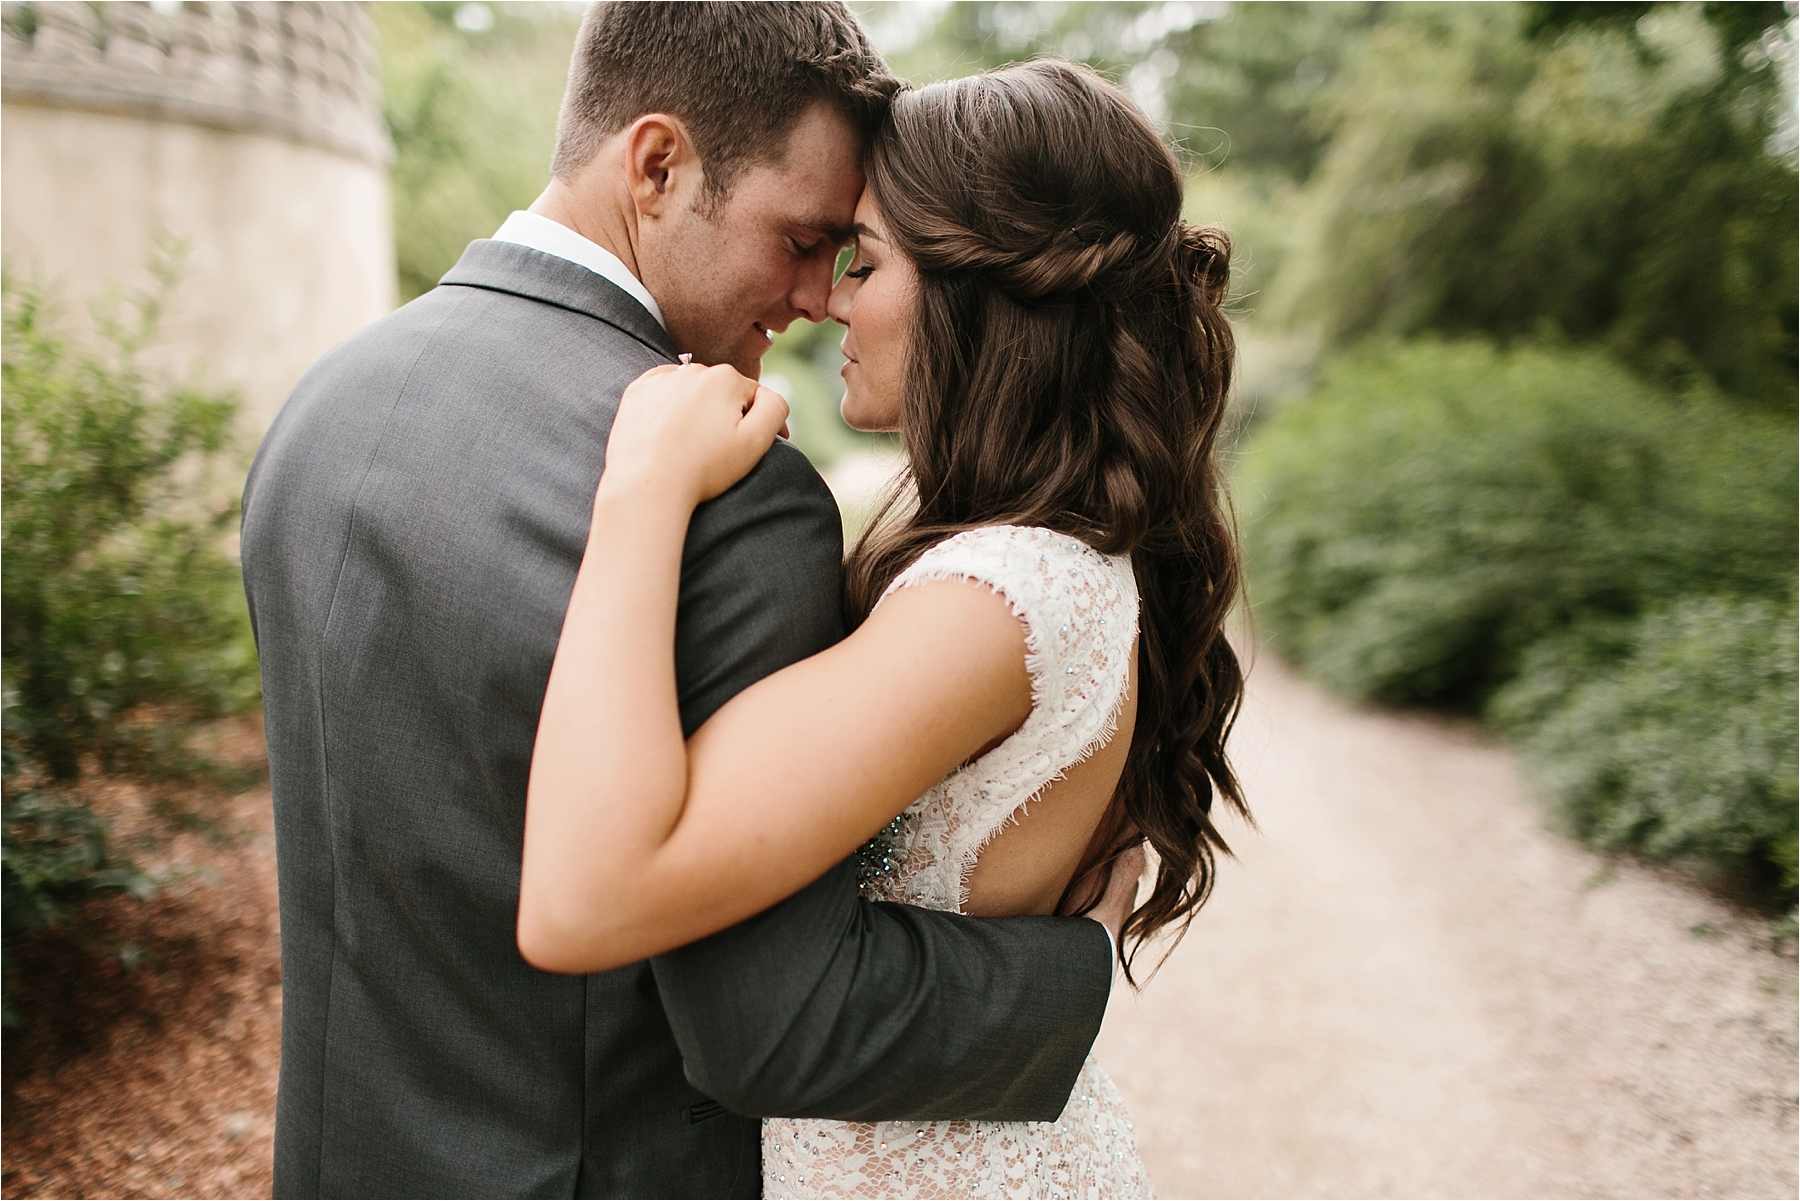 Devyn + Caden __ a Dallas Arboretum Garden Style Wedding by North Texas Wedding Photographer Rachel Meagan Photography __ 039